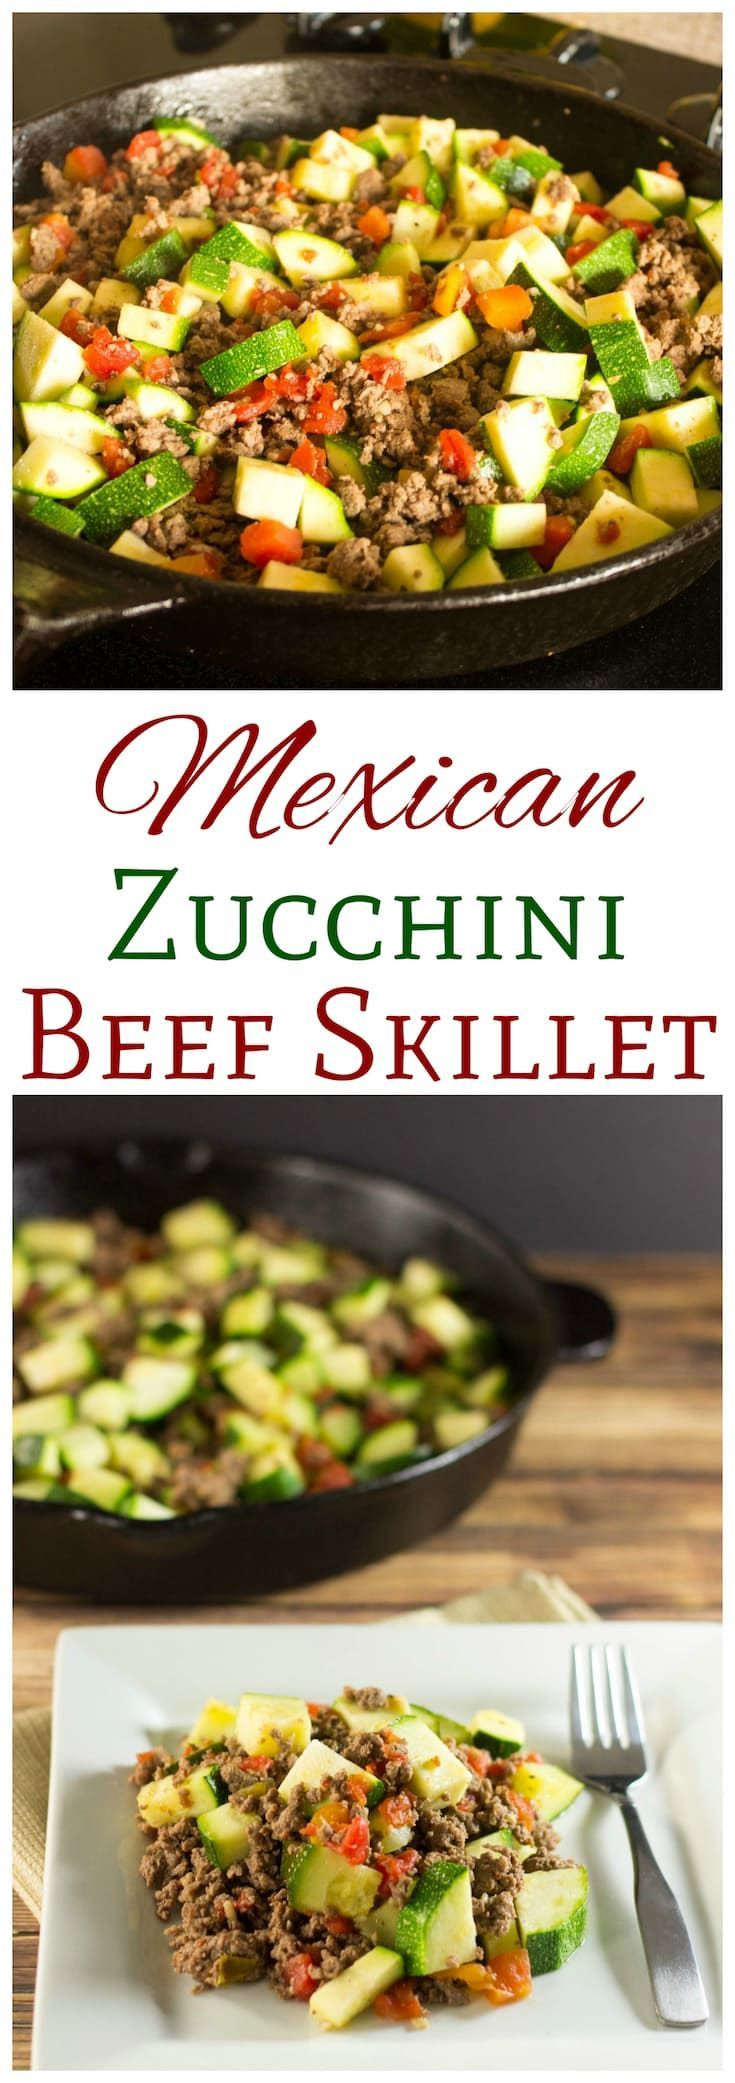 This low carb Mexican zucchini and ground beef recipe is a simple dish made with low cost ingredients. It's an easy LCHF dinner recipe perfect for summer. | LowCarbYum.com